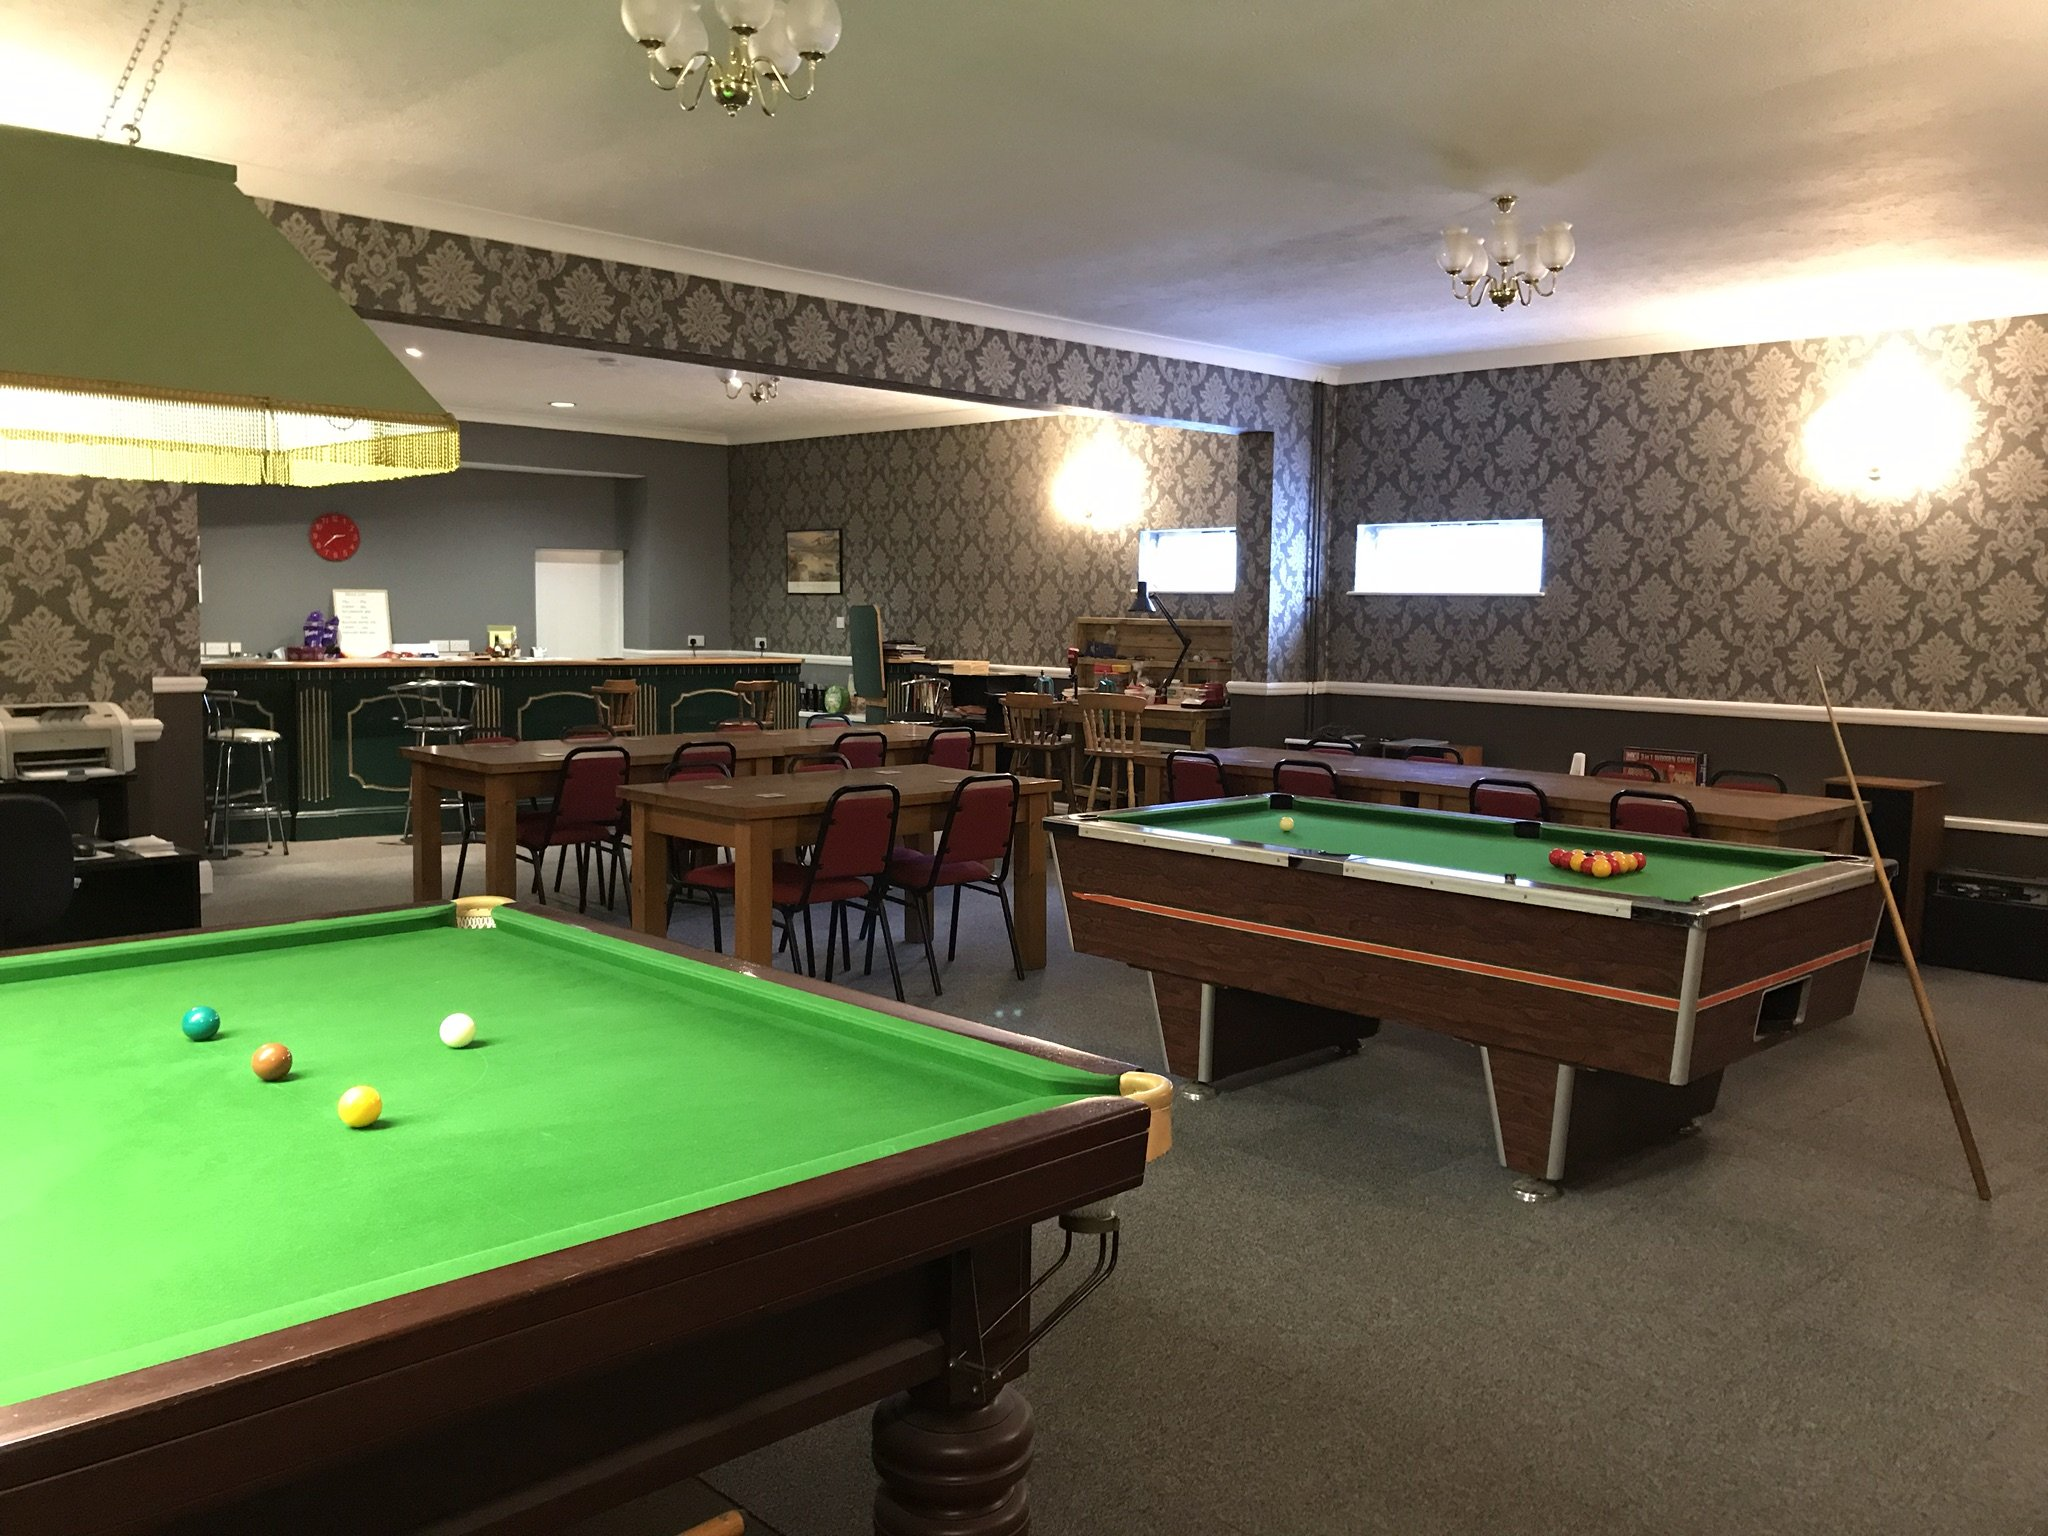 NE Lincs Target Club members lounge and bar